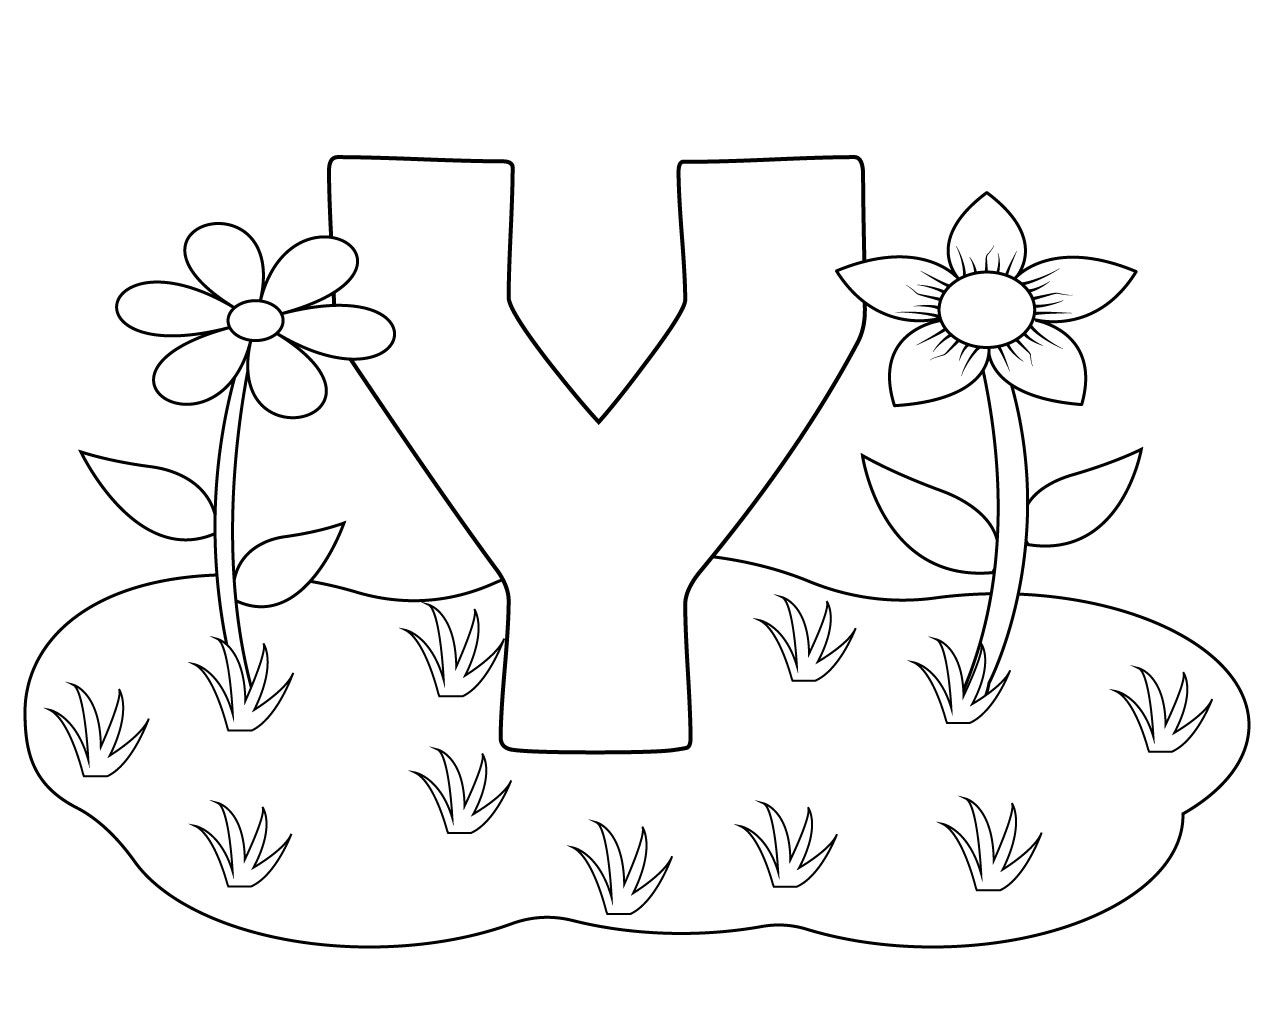 Free Printable Letter Y Coloring Pages Coloring Pages Free Printable Letters Printable Coloring Pages